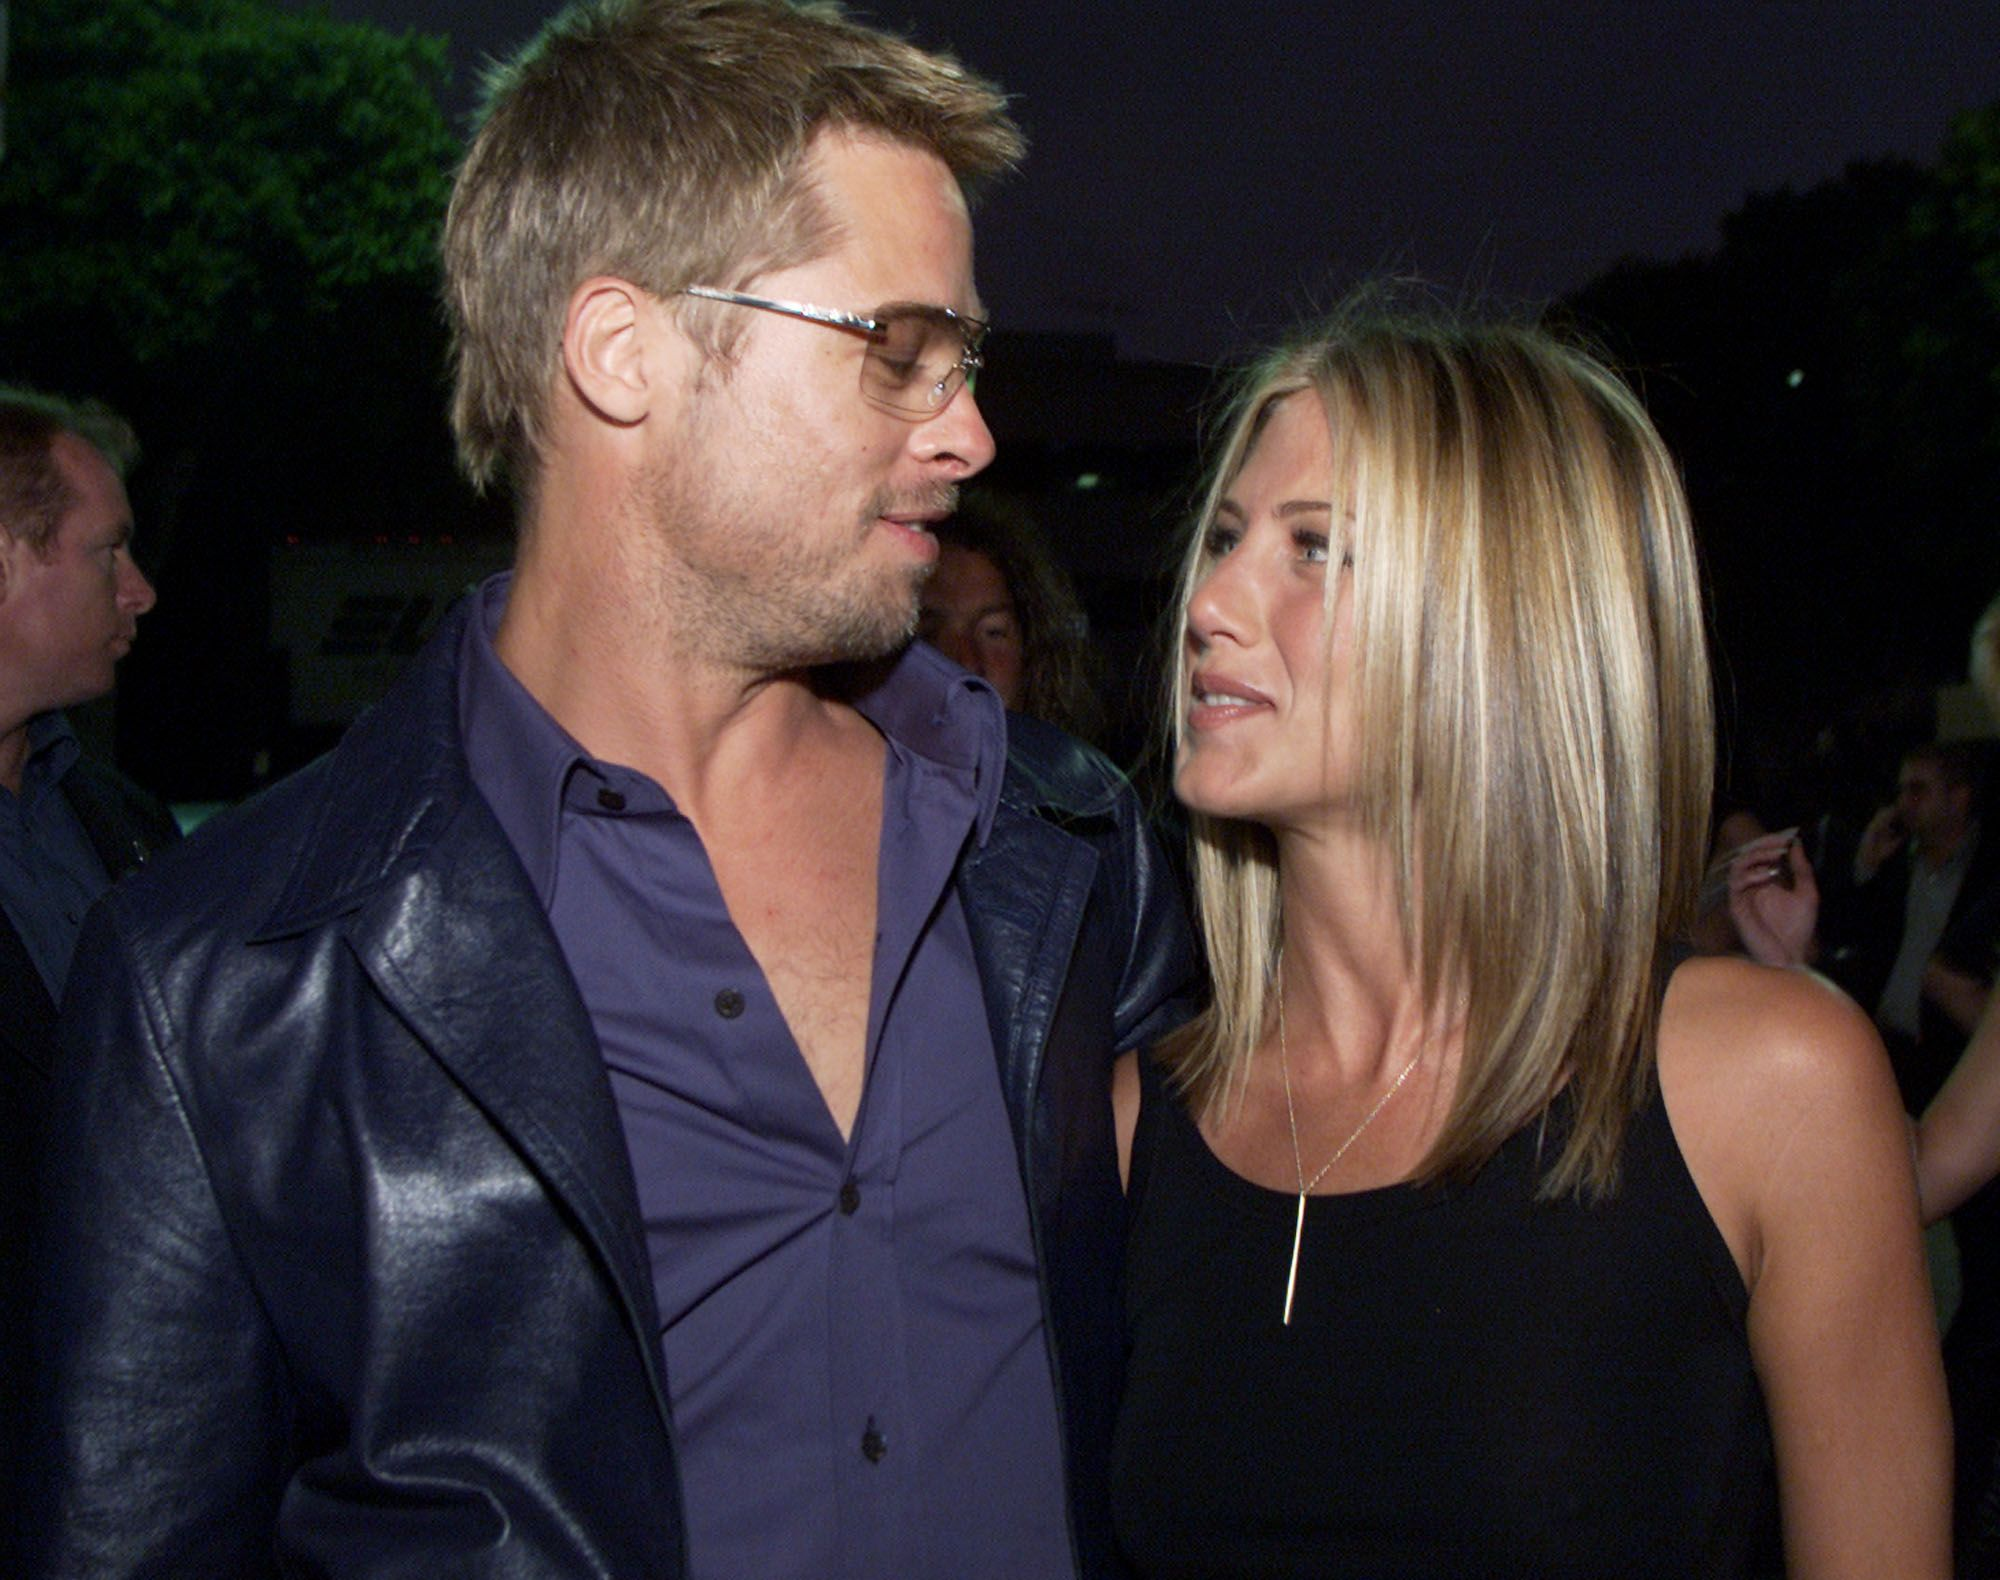 Both Brad Pitt and Jennifer Aniston have been nominated for Golden Globes